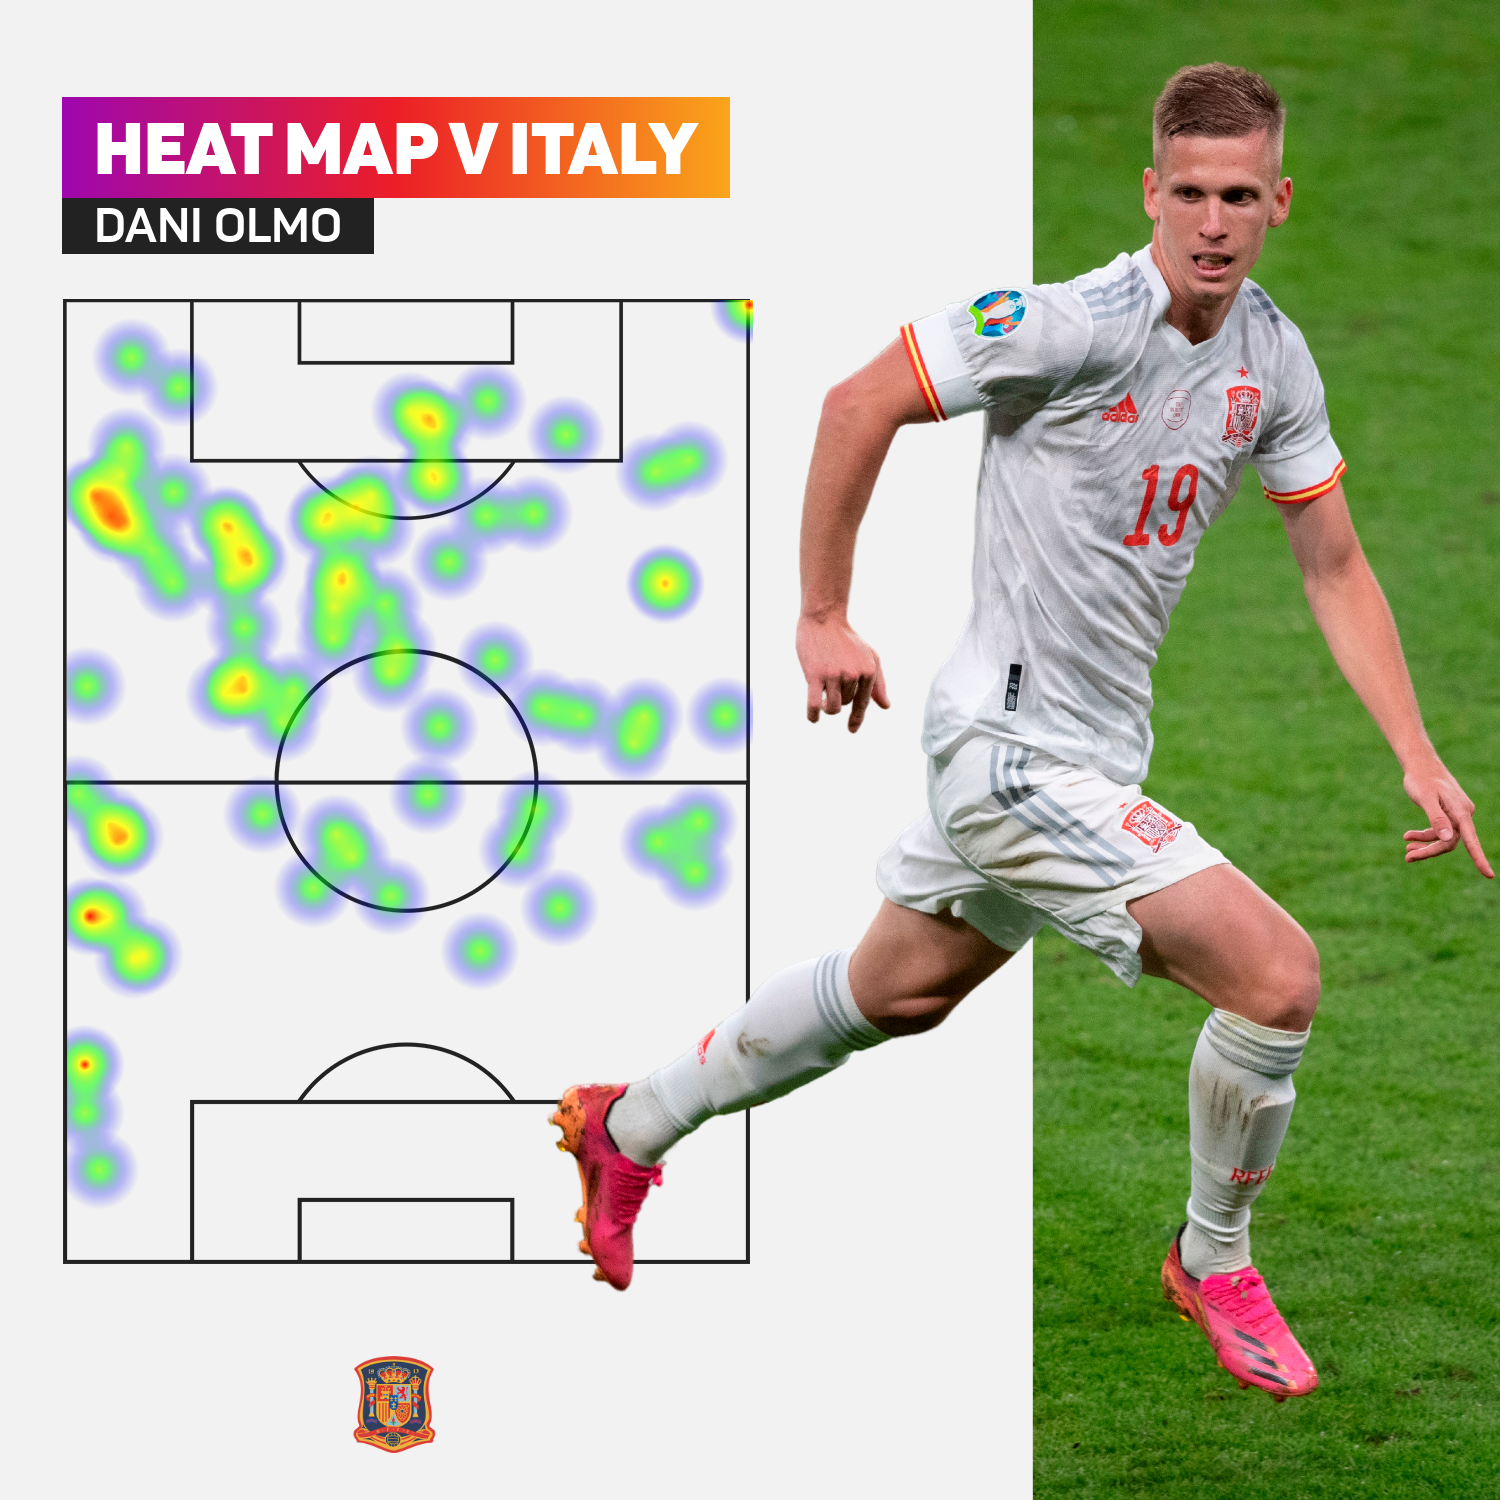 Dani Olmo's heat map against Italy